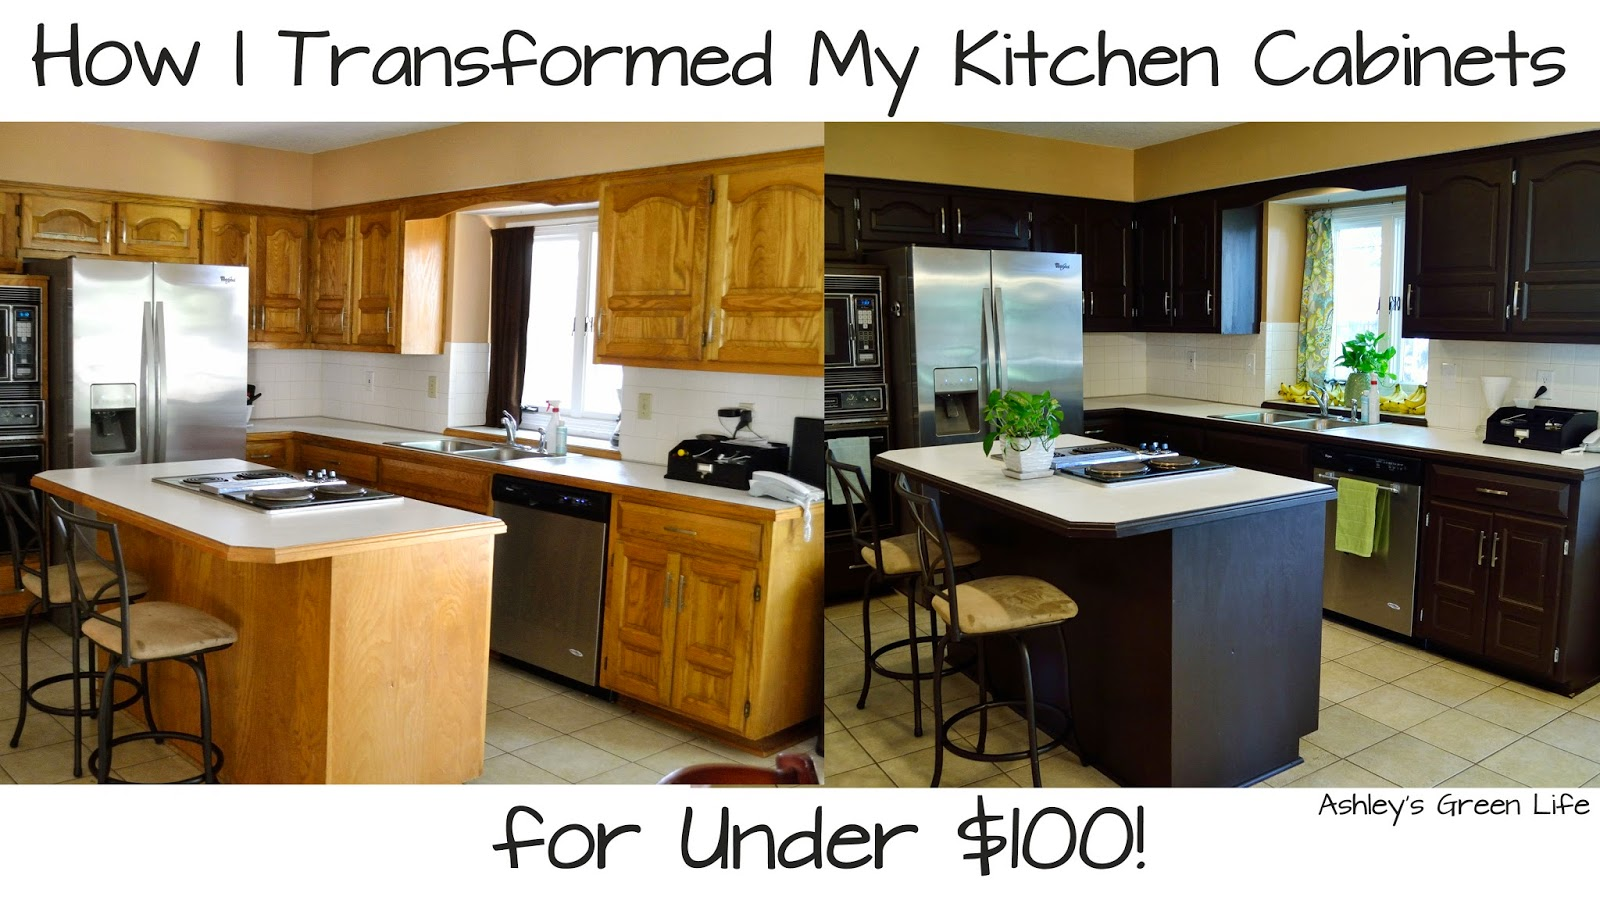 ashley s green life how i transformed my kitchen cabinets for they were this golden oak color that took my kitchen in a time machine back to a time when maybe those were cool cue early 90s but not here in 2014